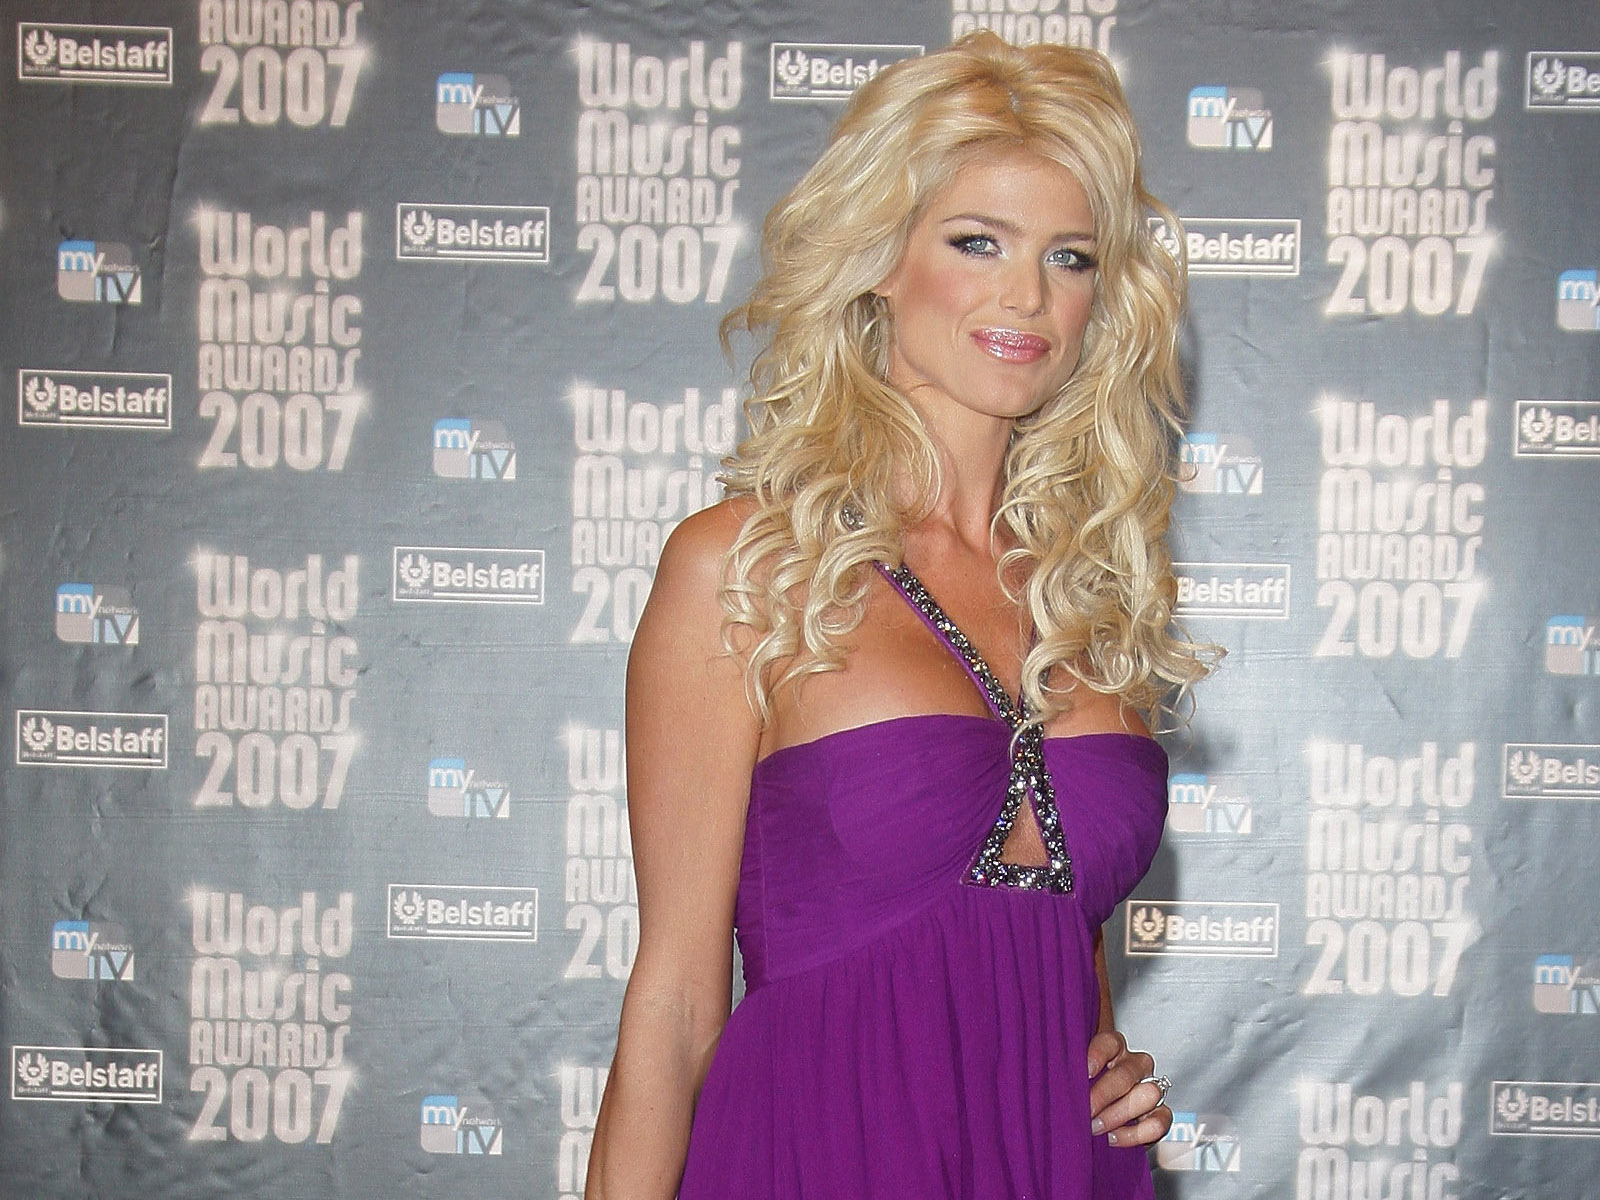 Victoria Silvstedt Wallpaper